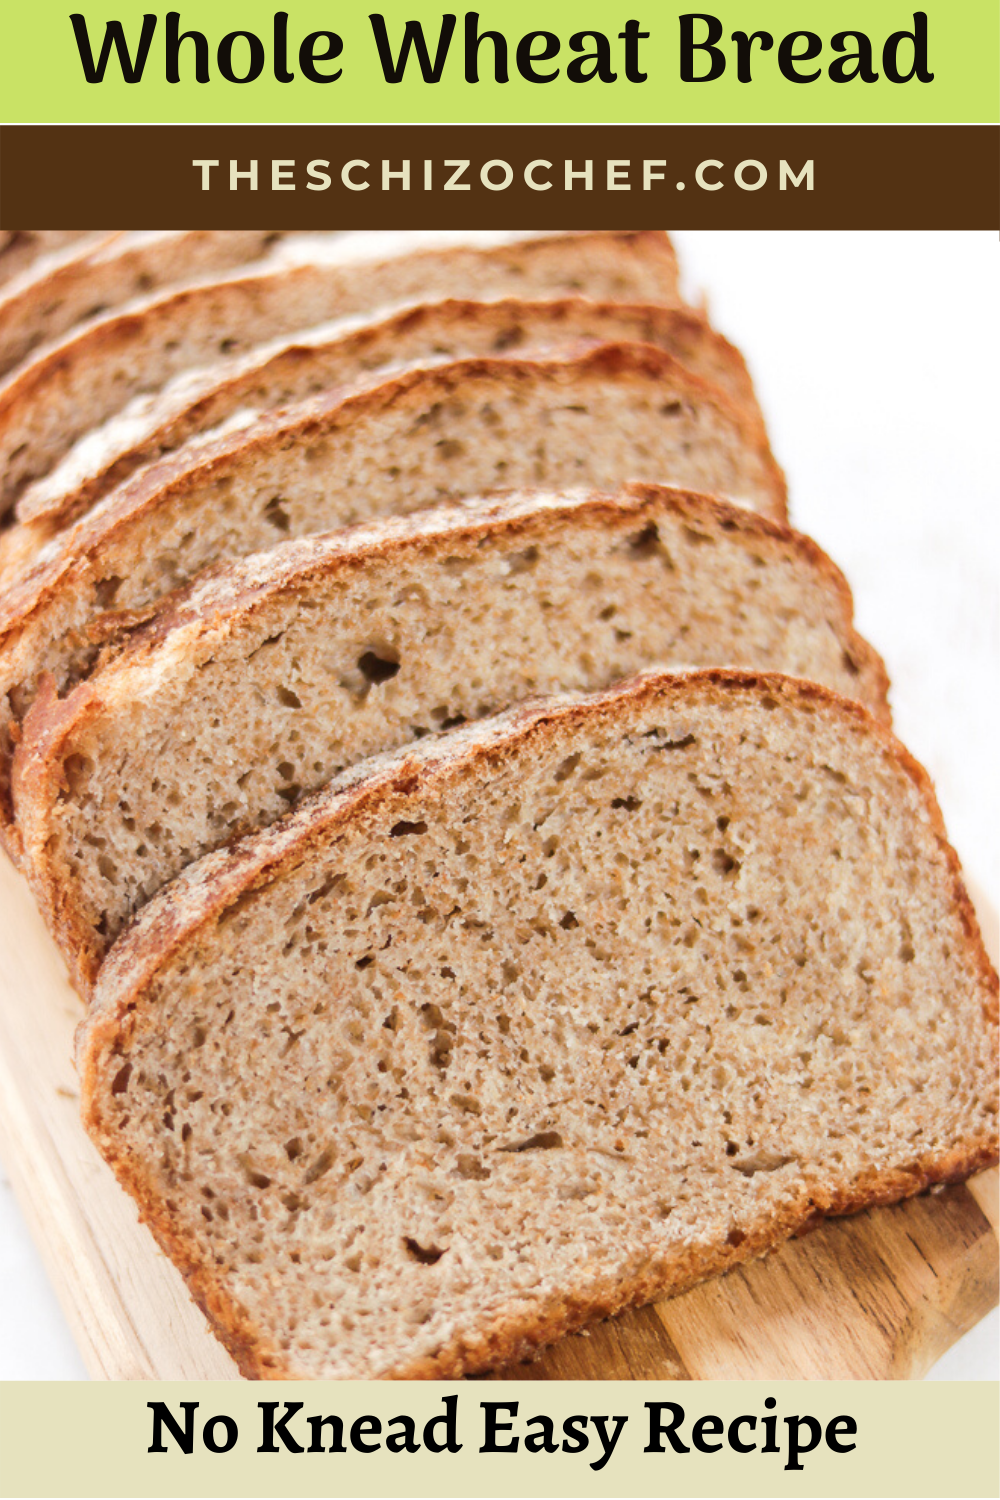 No Knead Whole Wheat Bread with text